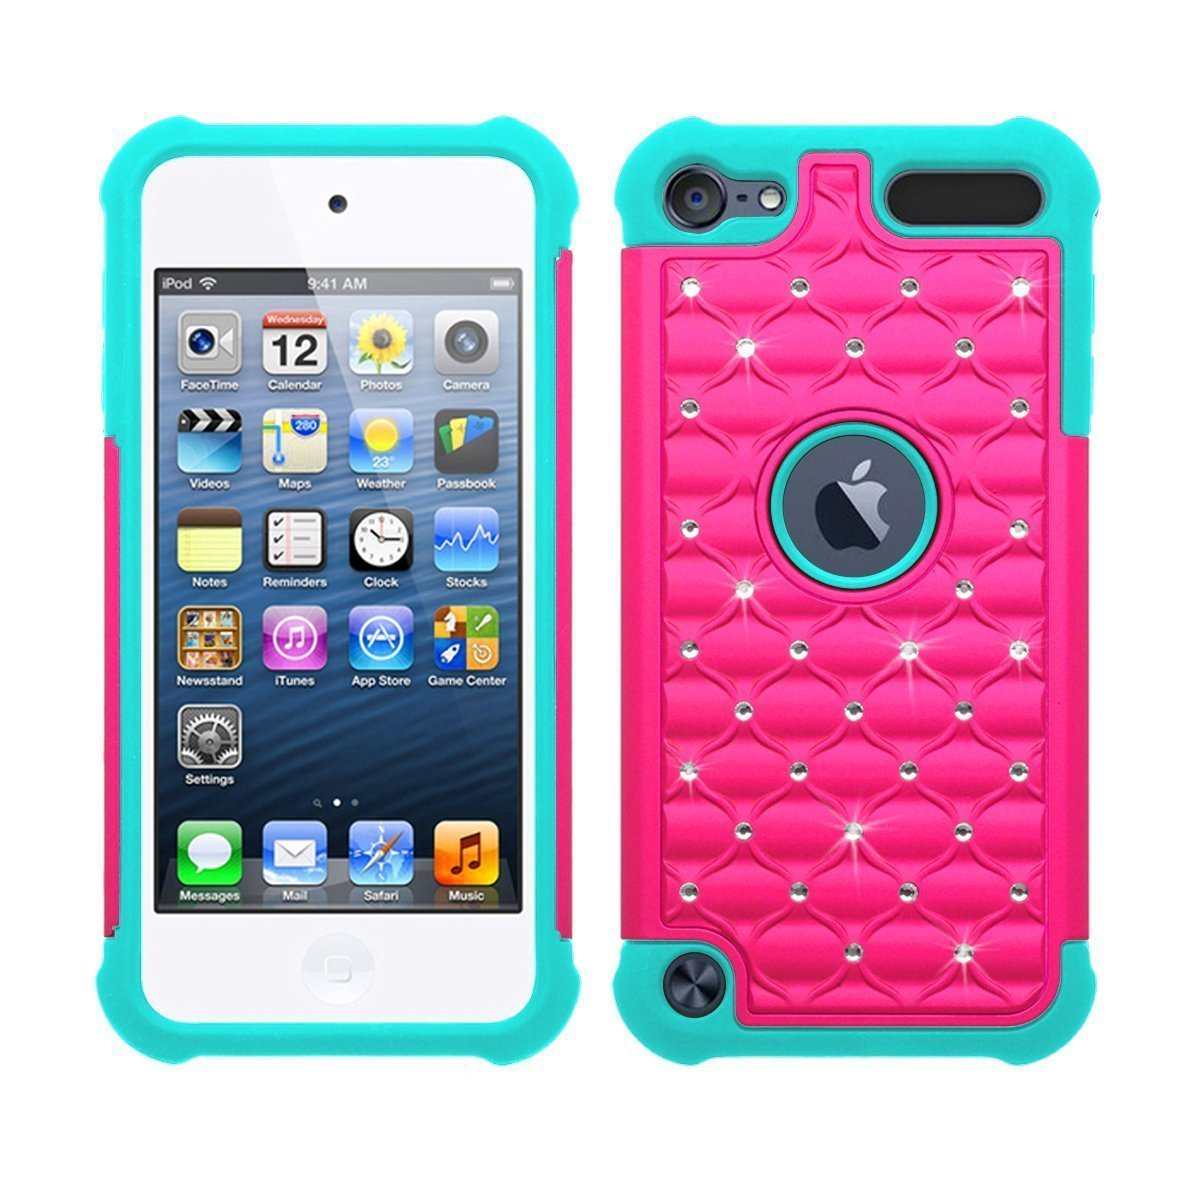 iPod Touch 5 Touch 6 Generation Case, Vogue shop Diamond design Durable 2in1 PC+Silicone Design Bumper Slim Crystal Bling Hybrid Armor Case Cover fit for iPod Touch 5 Touch 6 Generation (Rose+Teal)